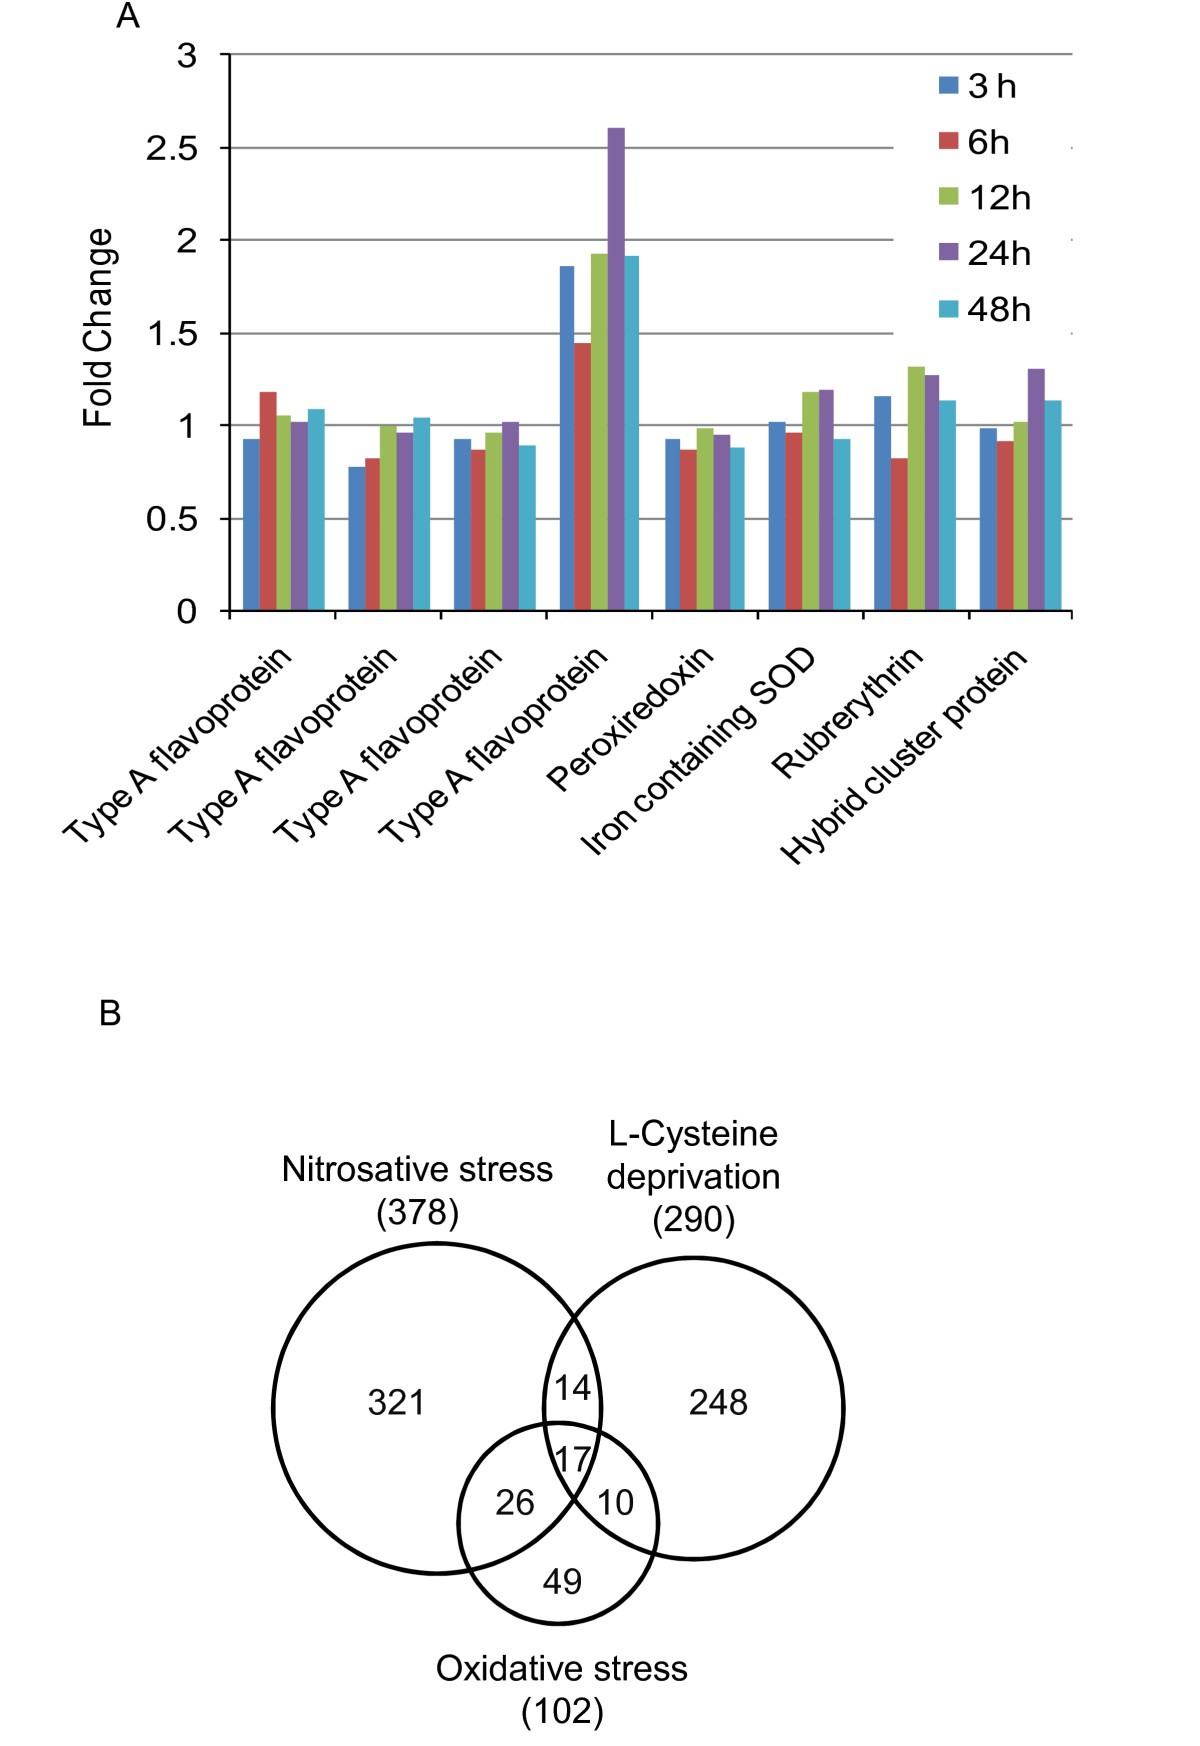 Global analysis of gene expression in response to L-Cysteine